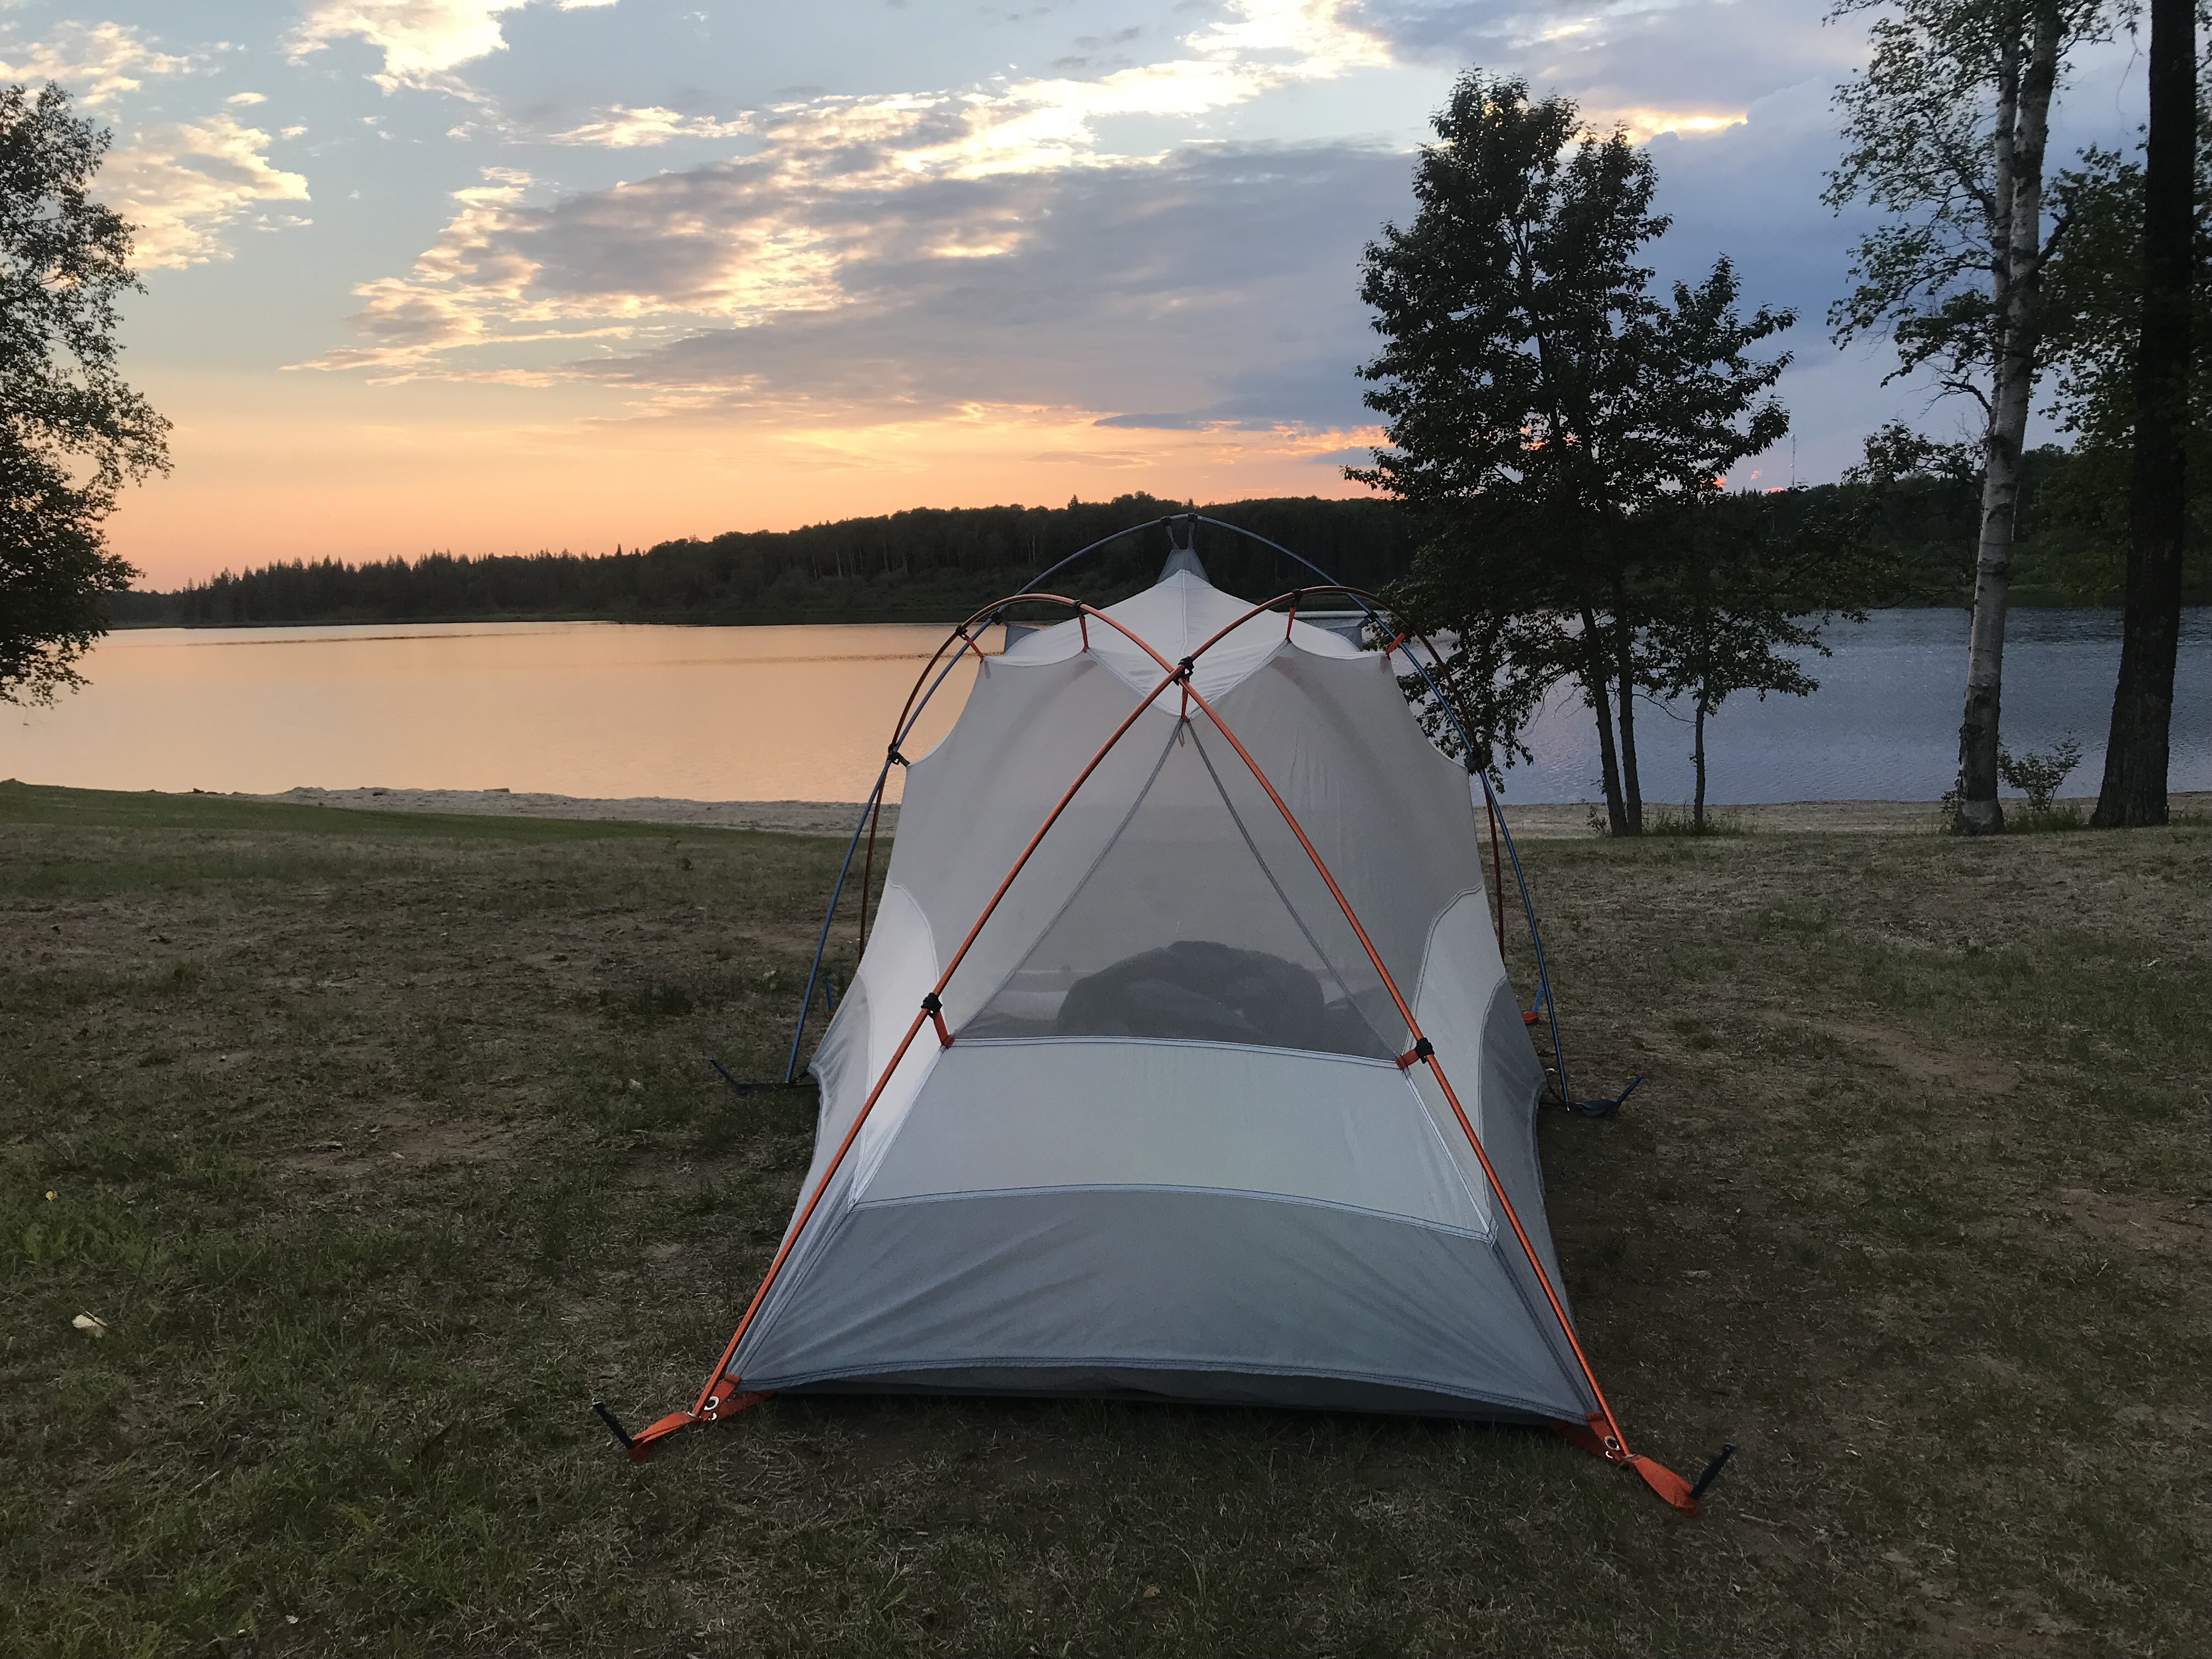 Setting sun over a lake, red cloudy sky, and tent in foreground